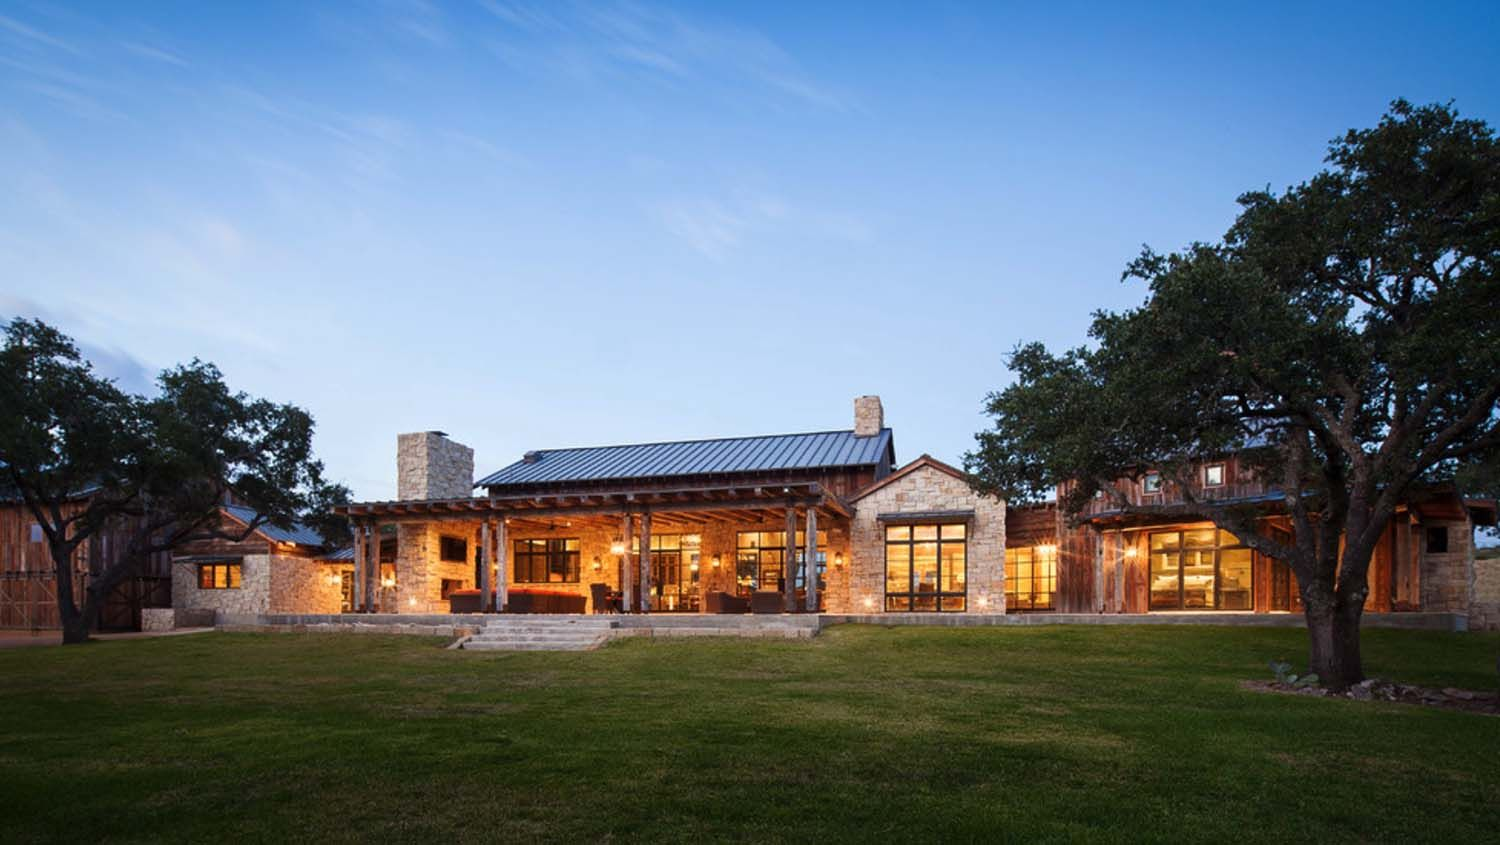 Modern Rustic Barn Style Retreat In Texas Hill Country Ranch House Designs Ranch Style Homes Hill Country Homes